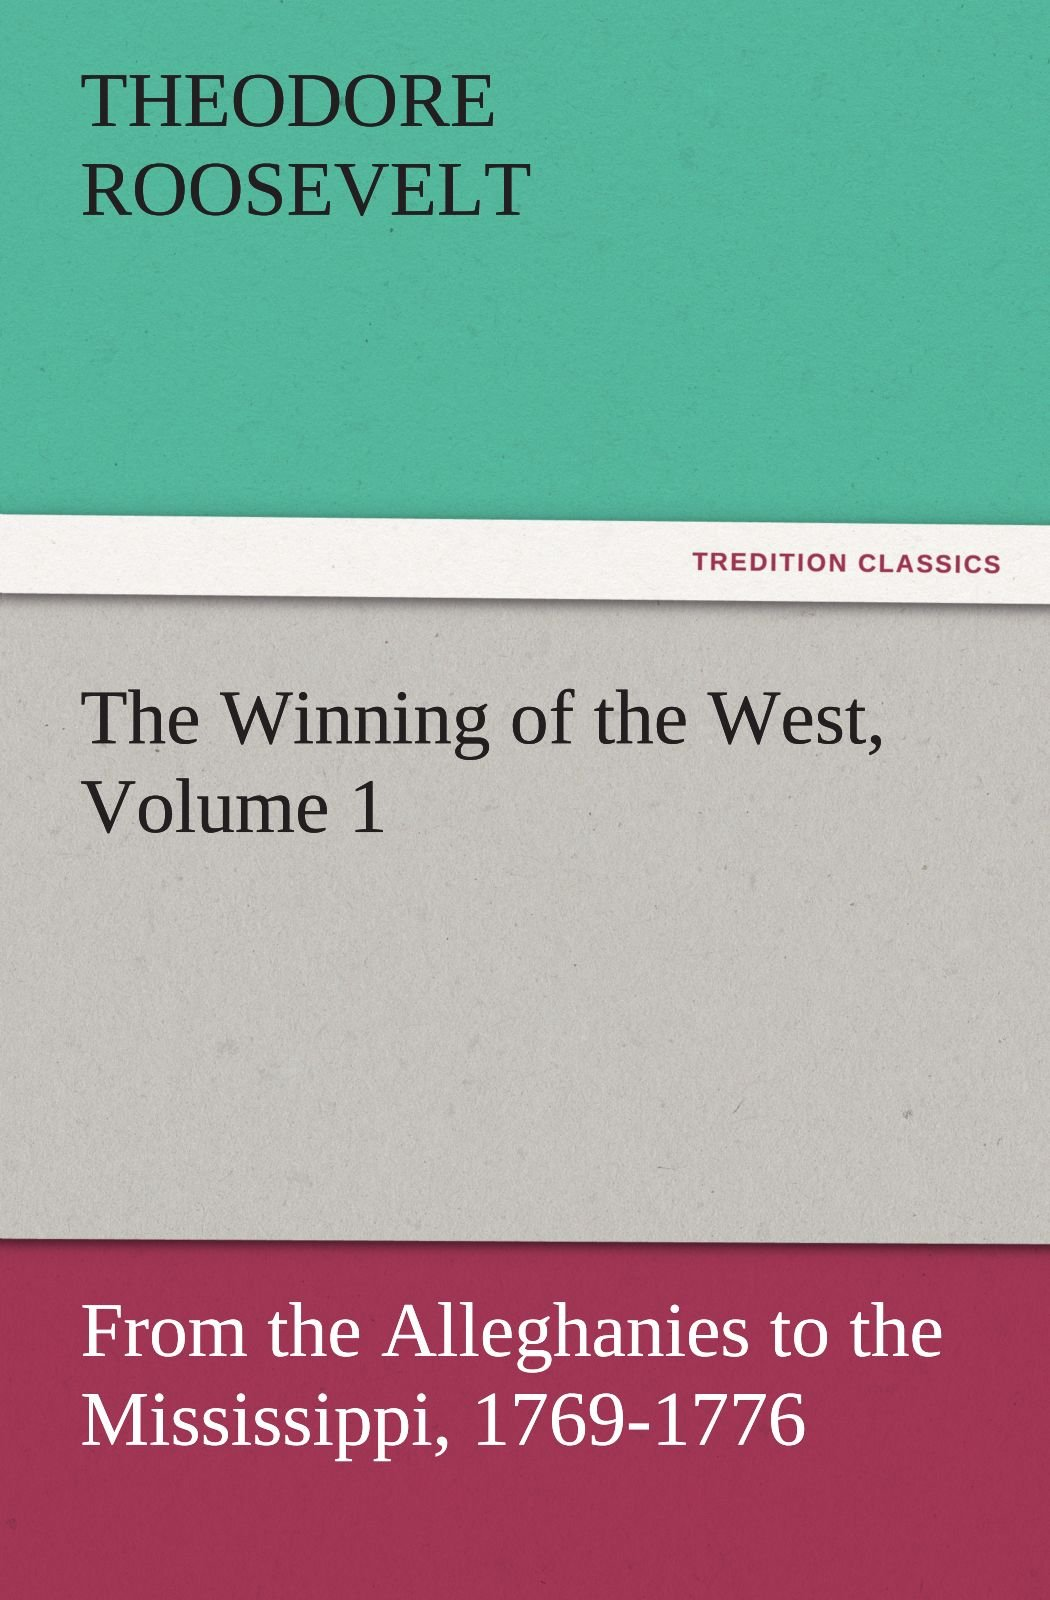 Download The Winning of the West, Volume 1: From the Alleghanies to the Mississippi, 1769-1776 (TREDITION CLASSICS) PDF